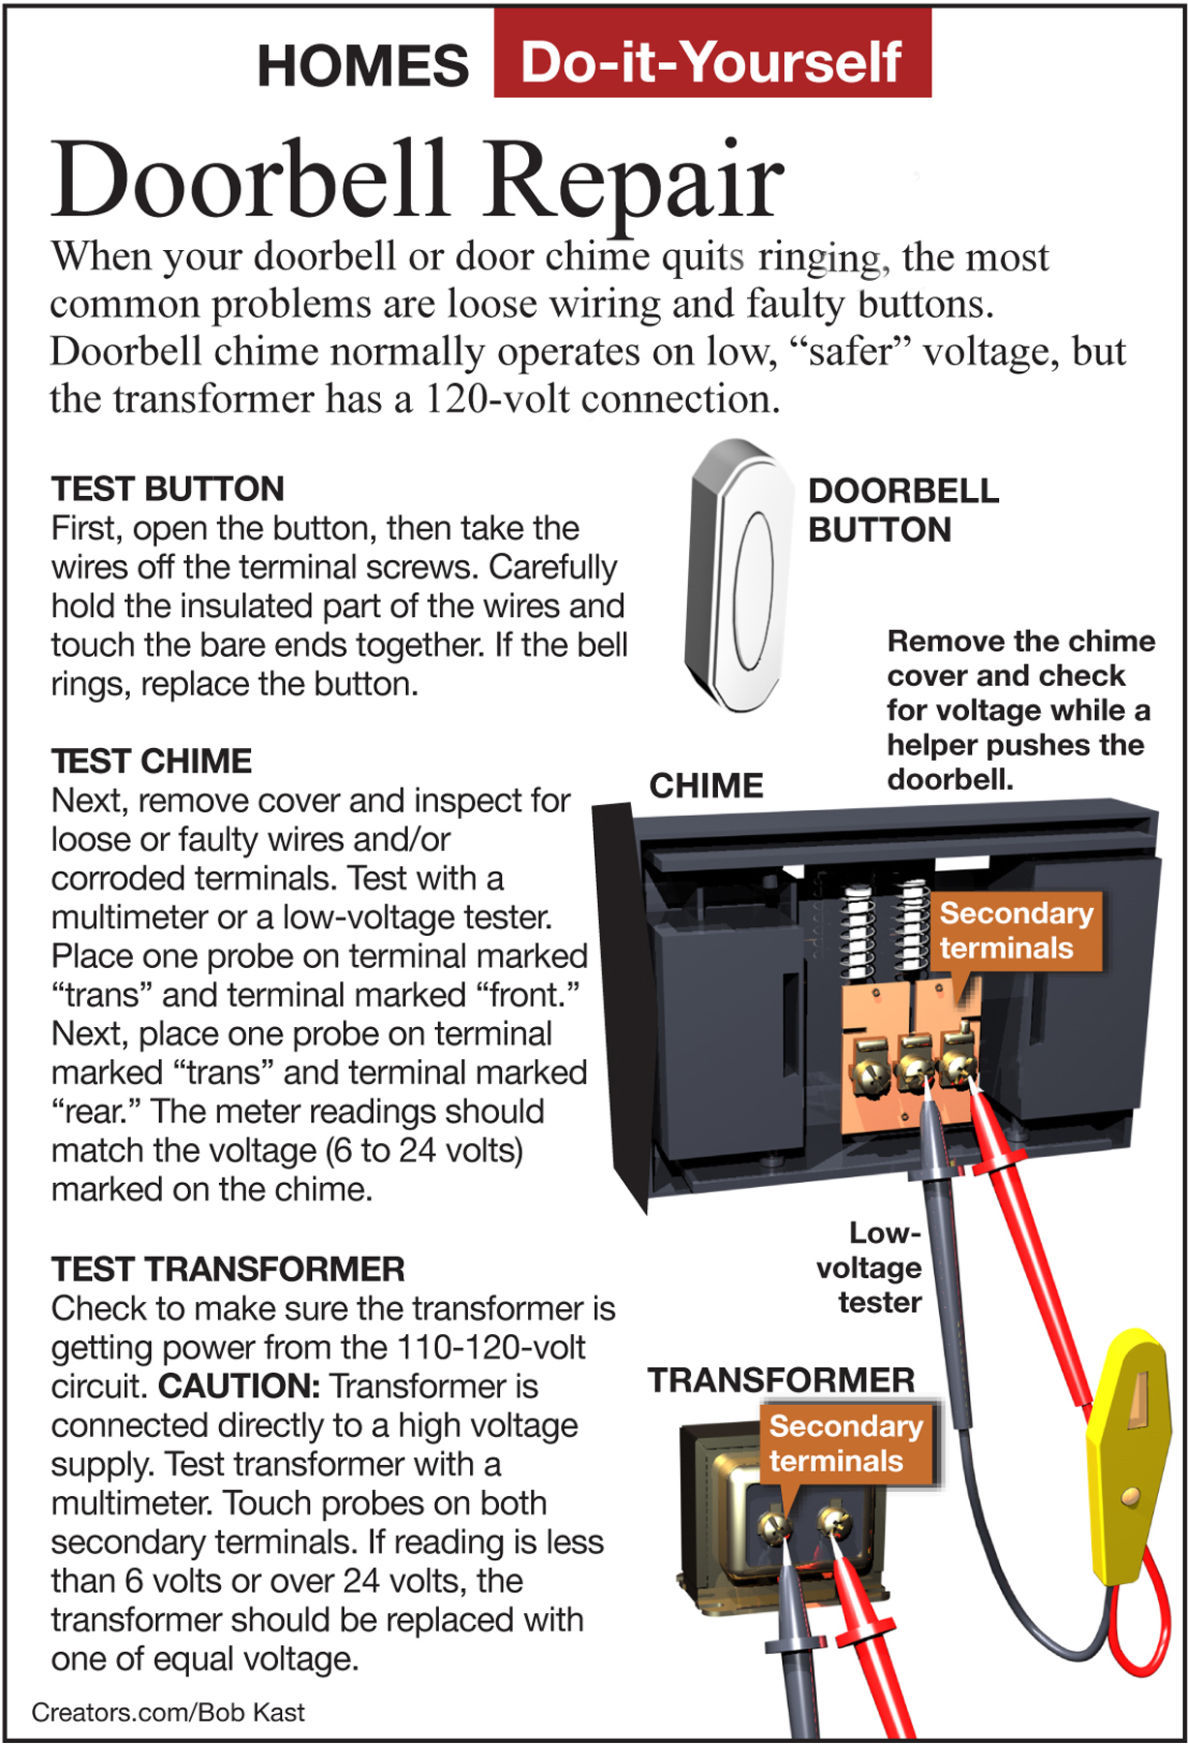 medium resolution of james dulley install a louder doorbell chime siouxland homes siouxcityjournal com sc 1 st sioux city journal